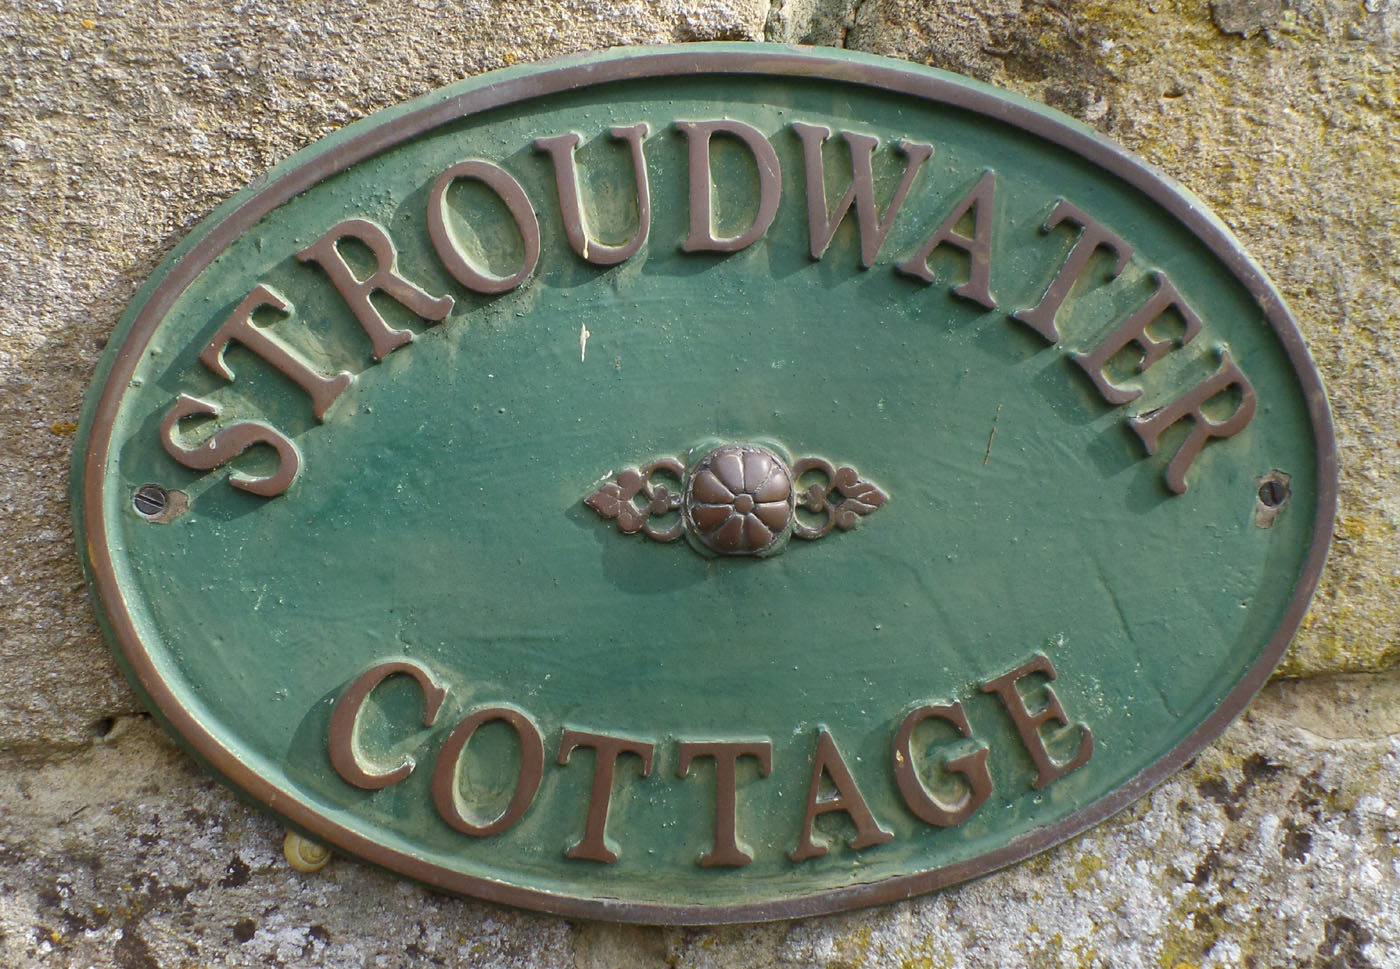 Stroudwater Court